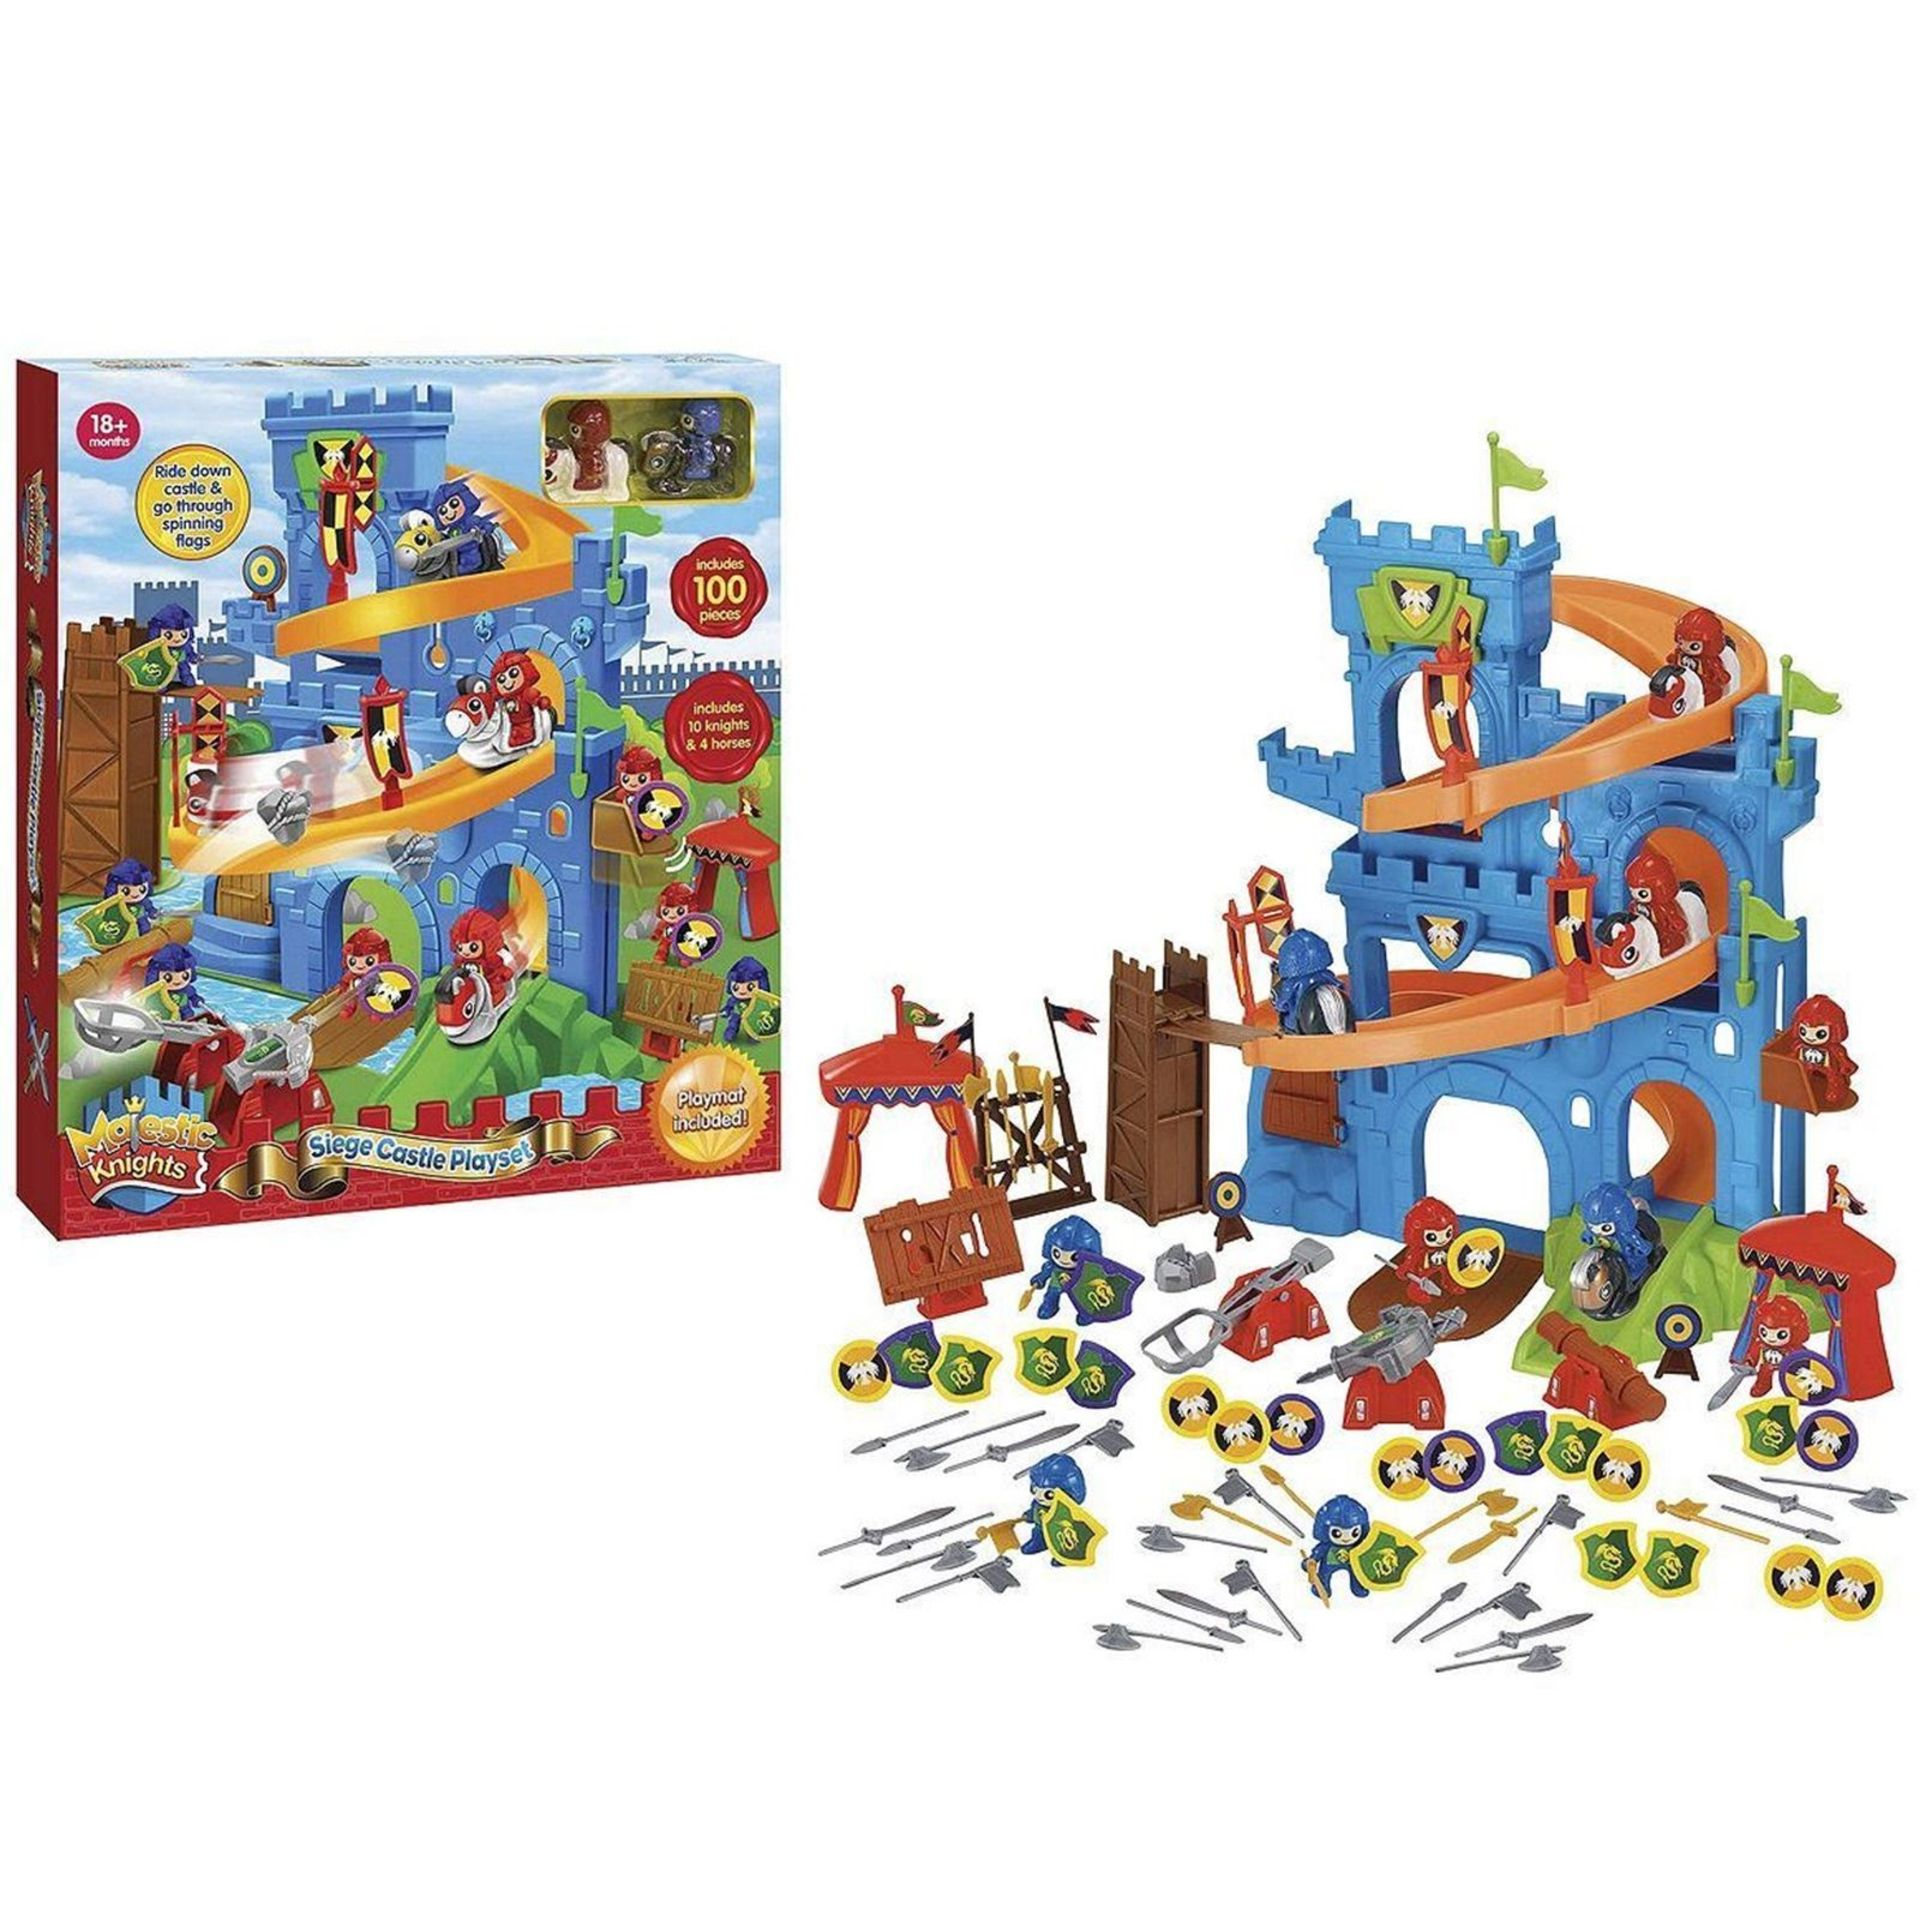 Lot 12578 - V Brand New Majestic Knights 100 Piece Siege Castle Playset - Includes 10 Knights And Four Horses